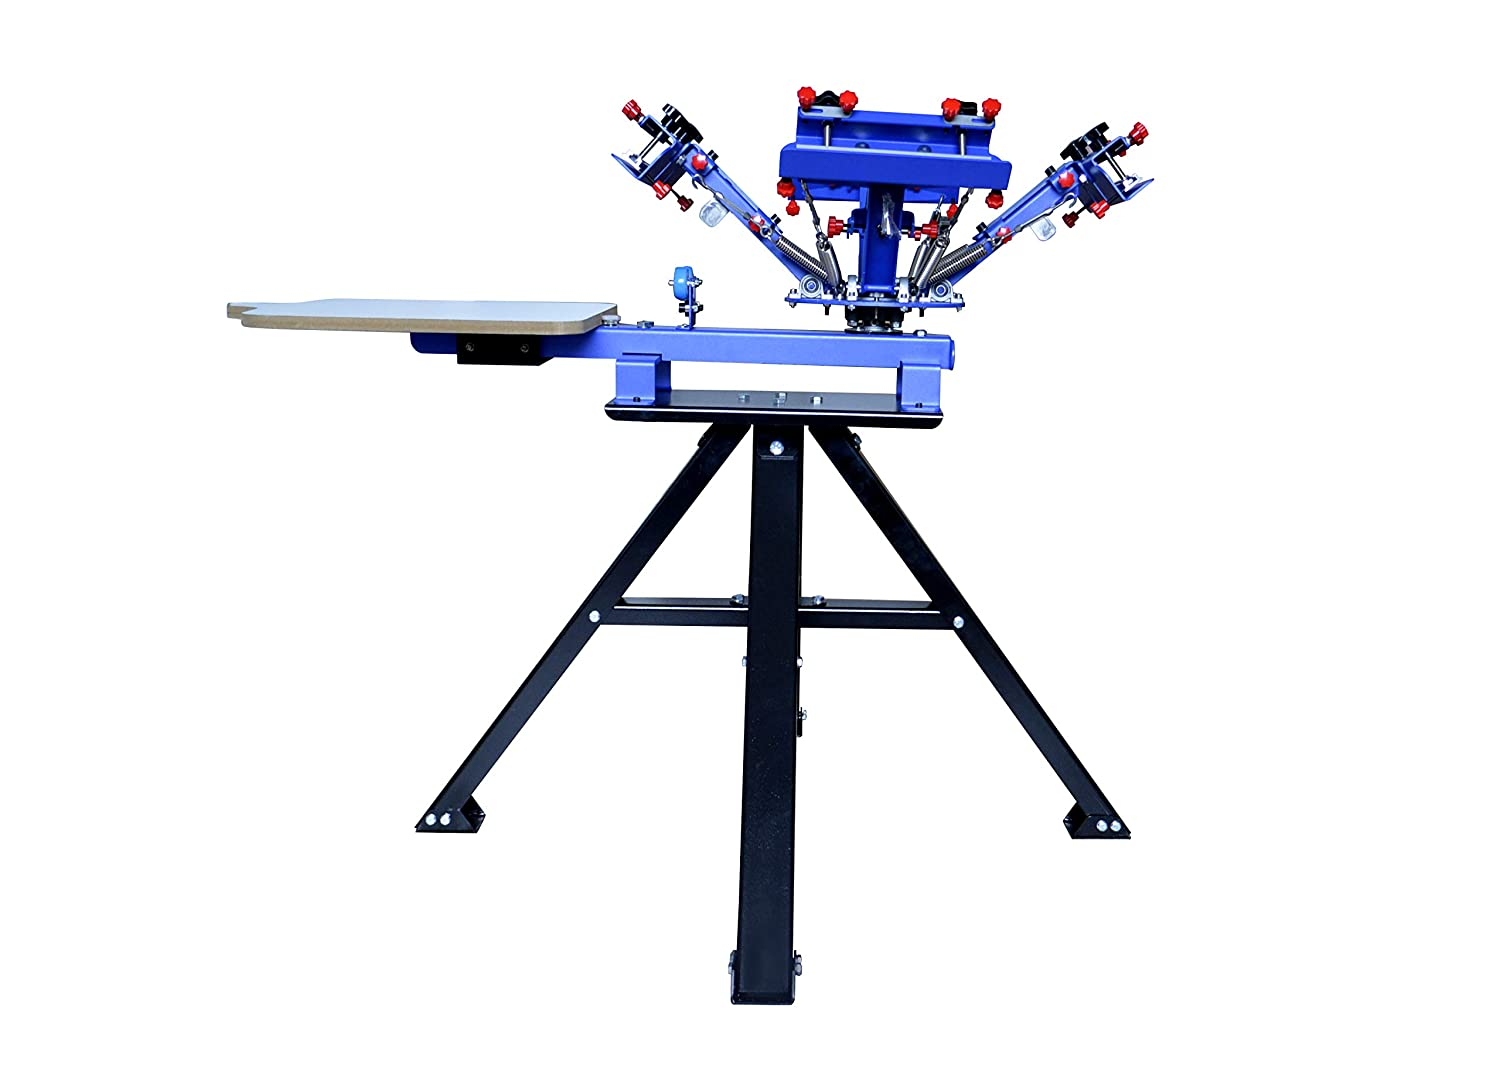 TECHTONGDA Micro-Registration 4 Color 1 Station Screen Printing Machine T-Shirt Printing Press with Stand